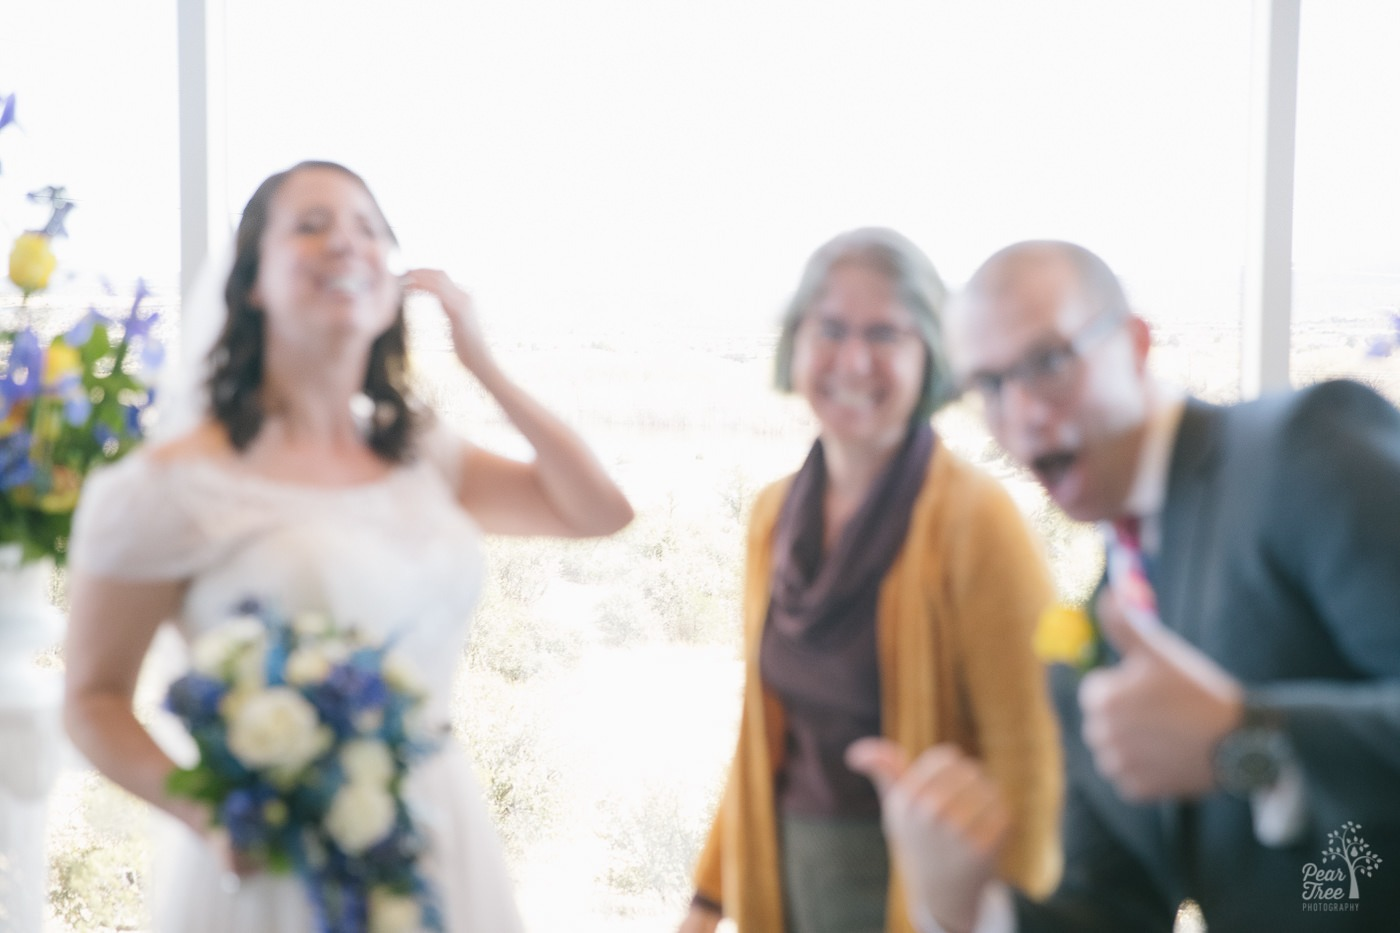 When a wedding photographer hands off her camera to be included in wedding formals, this is the resulting out-of-focus photograph